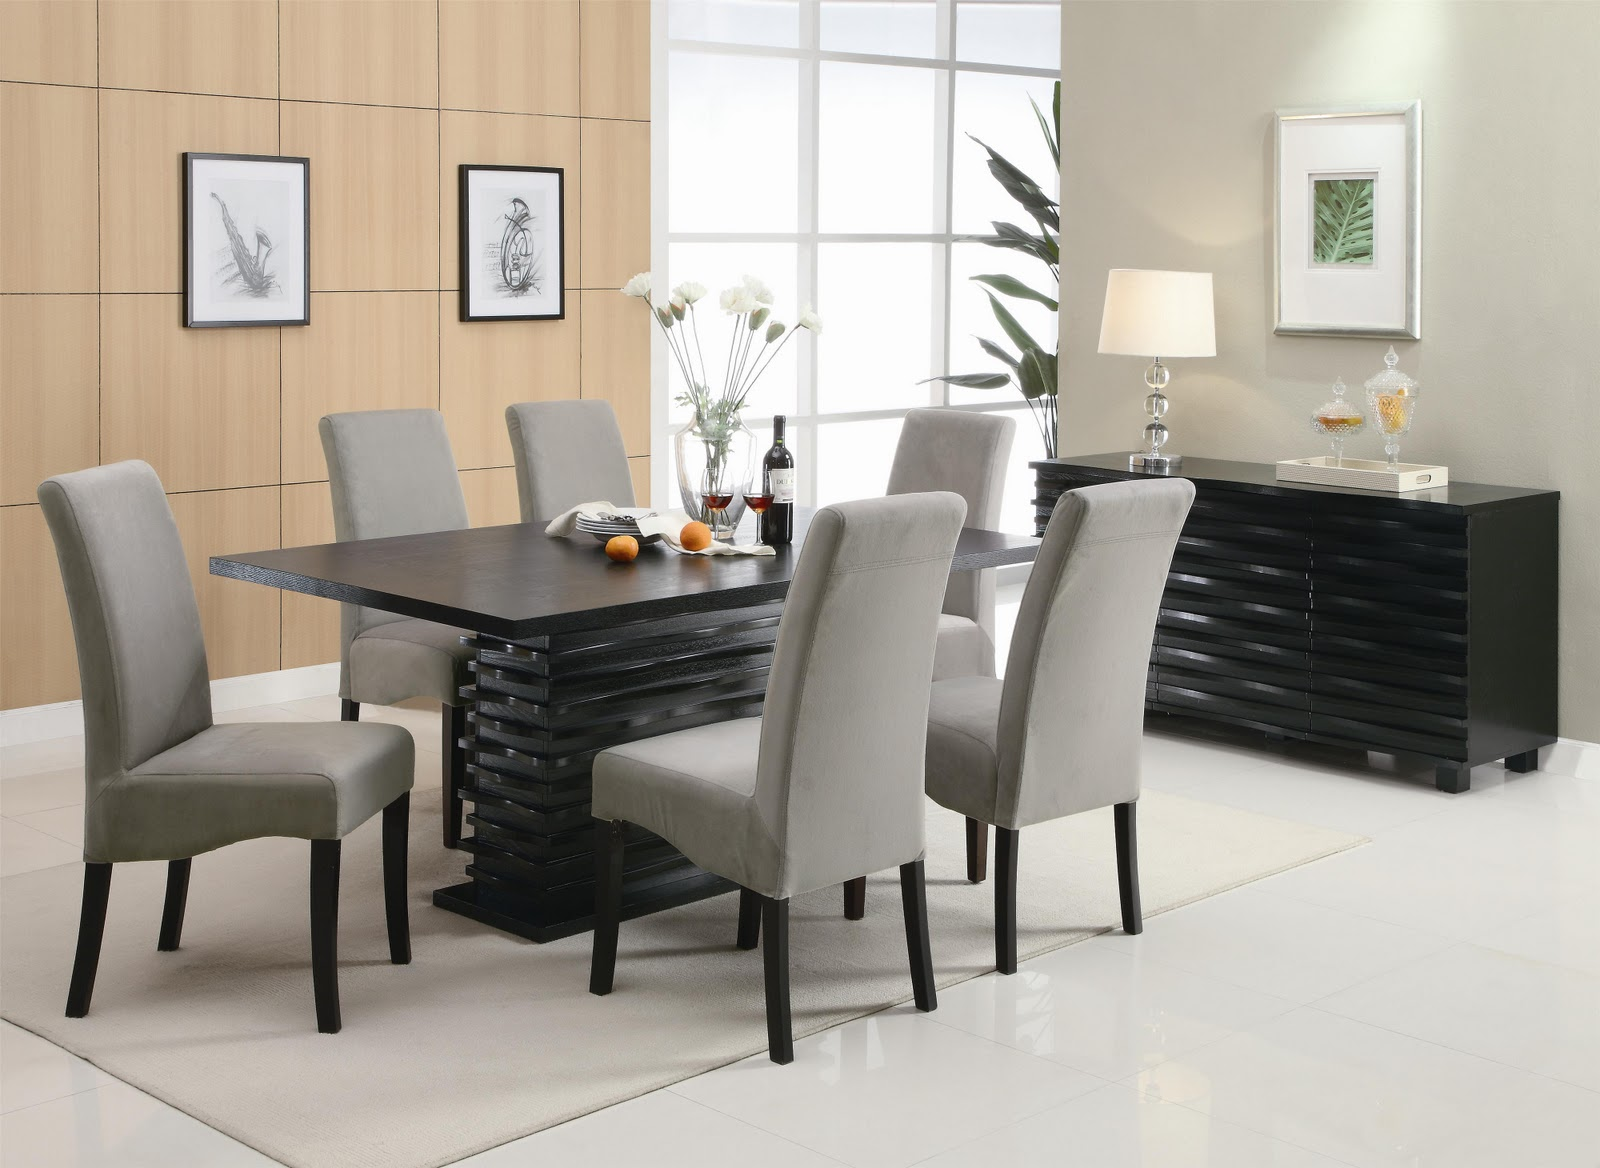 Dining Chairs Set Dining Room Royal Furniture Outlet